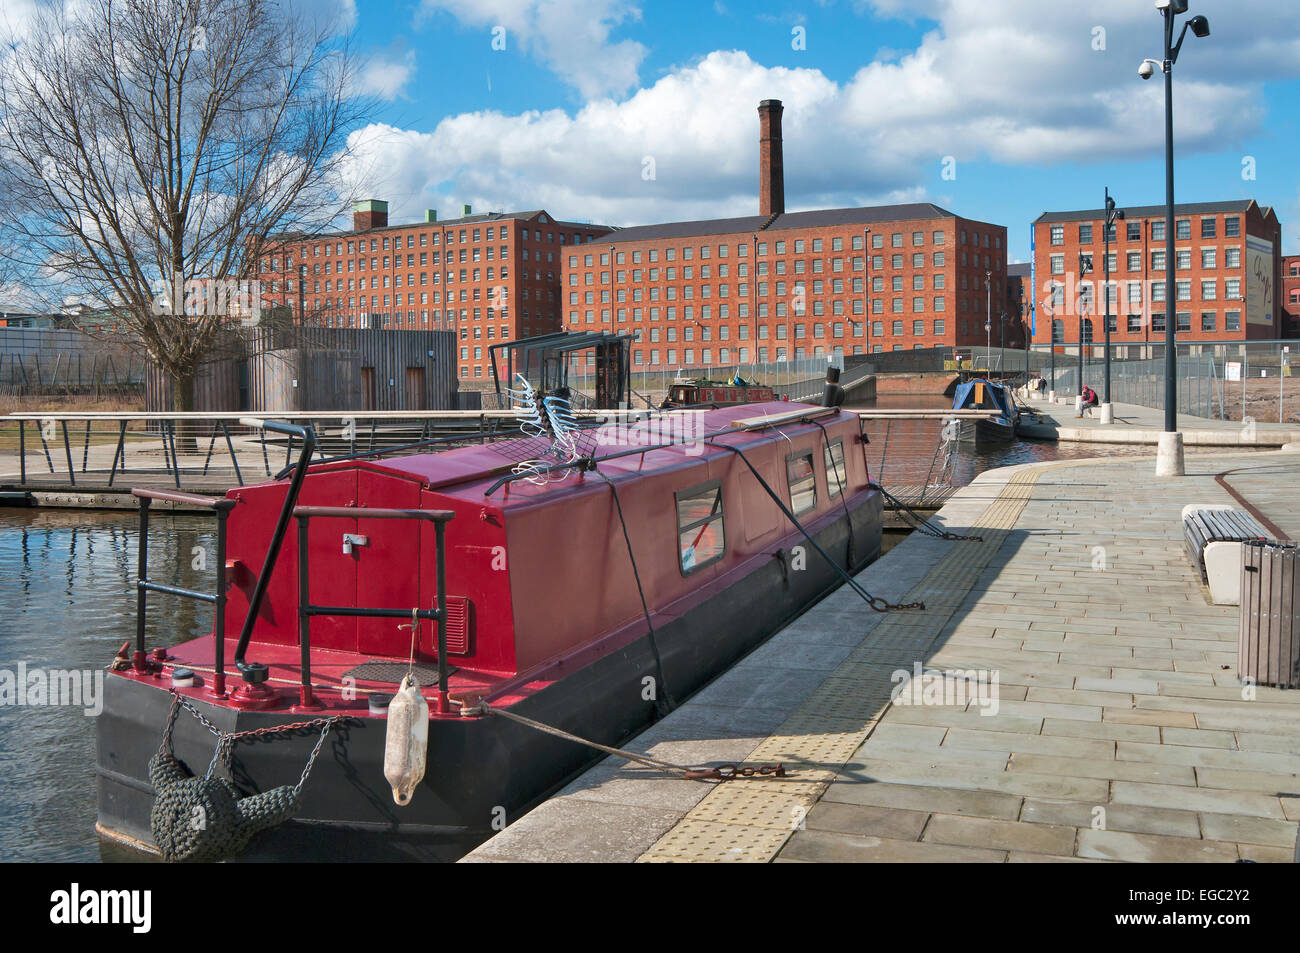 Canal barge in New Islington central Manchester,Ancoats Murray's Mills on the Rochdale canal in the background. - Stock Image